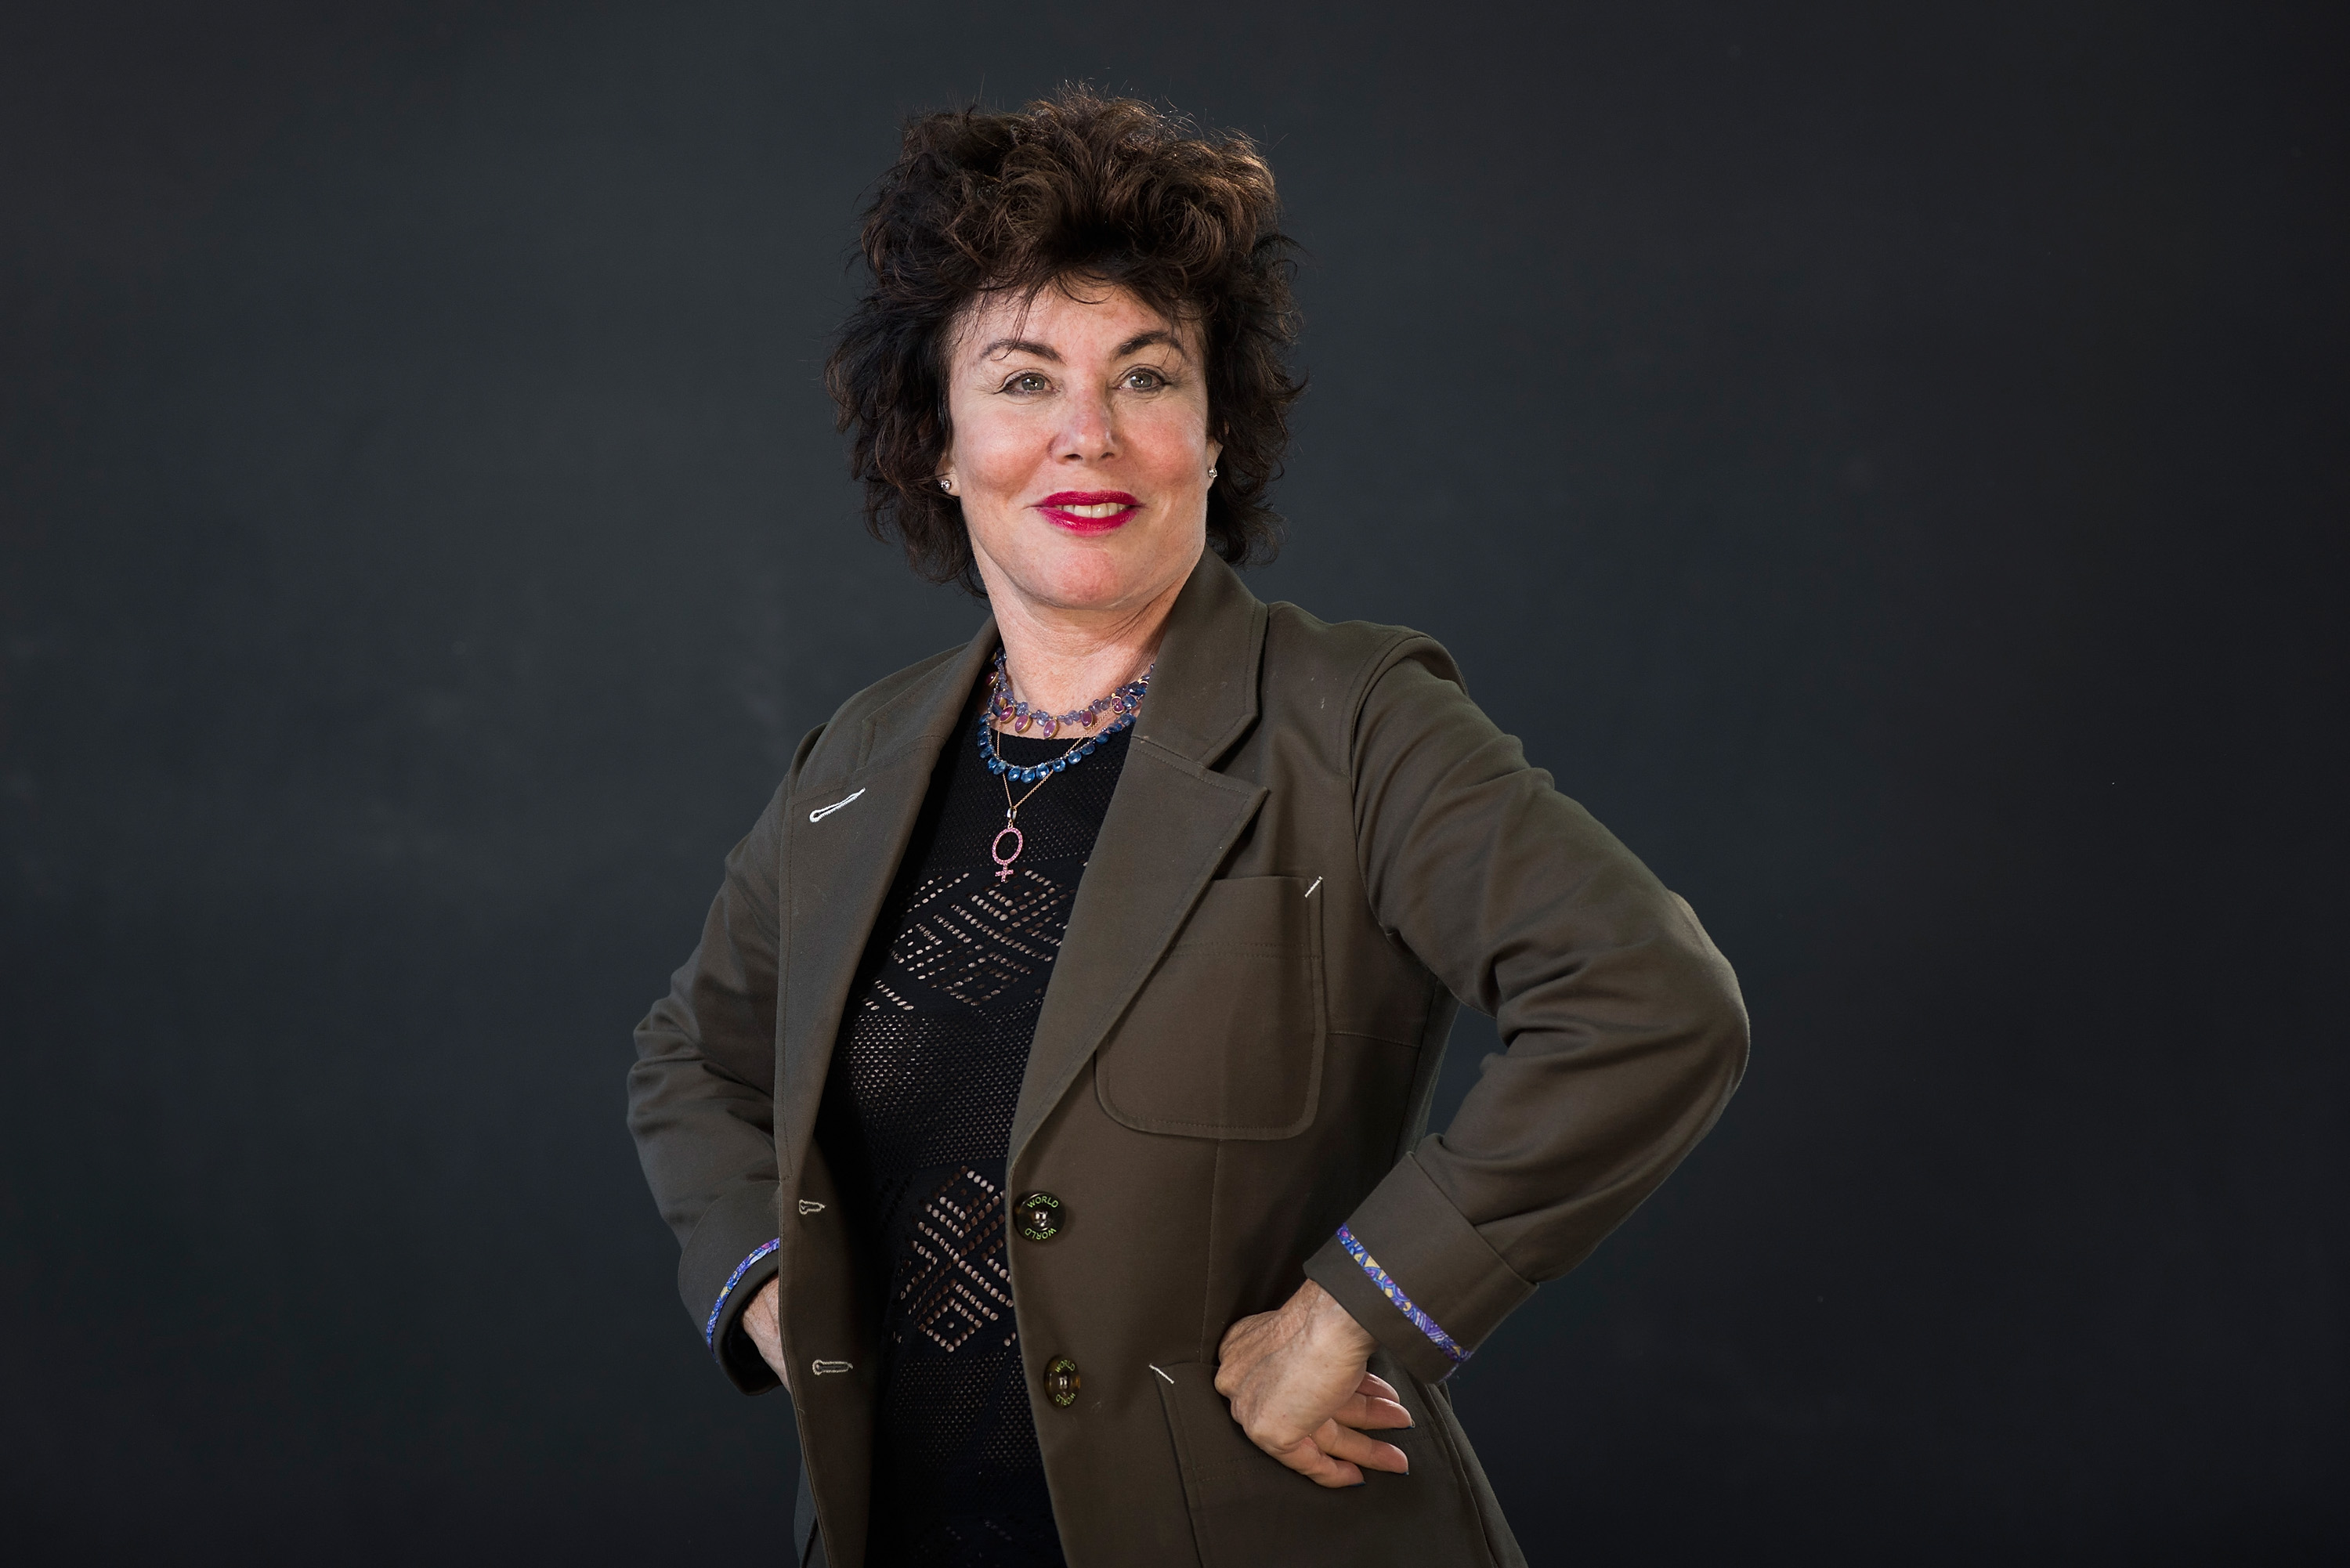 EDINBURGH, SCOTLAND - AUGUST 24: Ruby Wax attends the Edinburgh International Book Festival on August 24, 2016 in Edinburgh, Scotland. The Edinburgh International Book Festival is one of the most important annual literary events, and takes place in the city which became a UNESCO City of Literature in 2004.  (Photo by Awakening/Getty Images)  Getty, TL